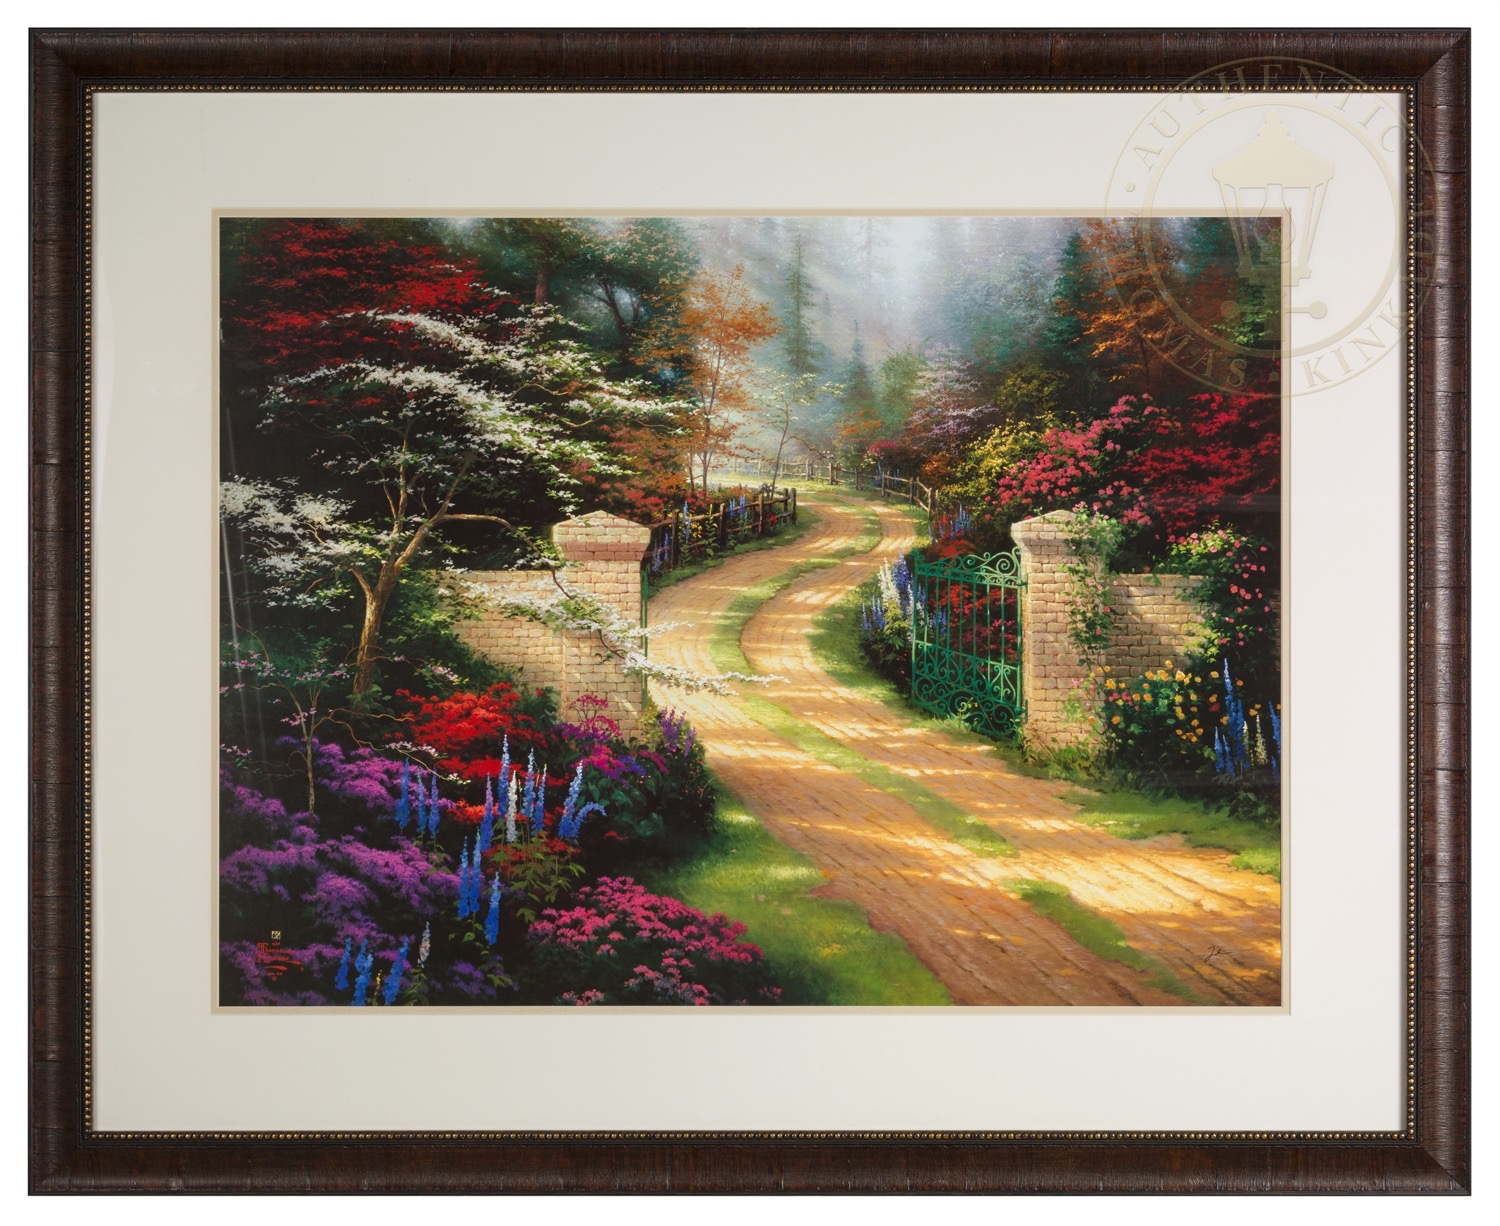 Spring Gate – Framed Matted Print Signed by Thomas Kinkade | The ...